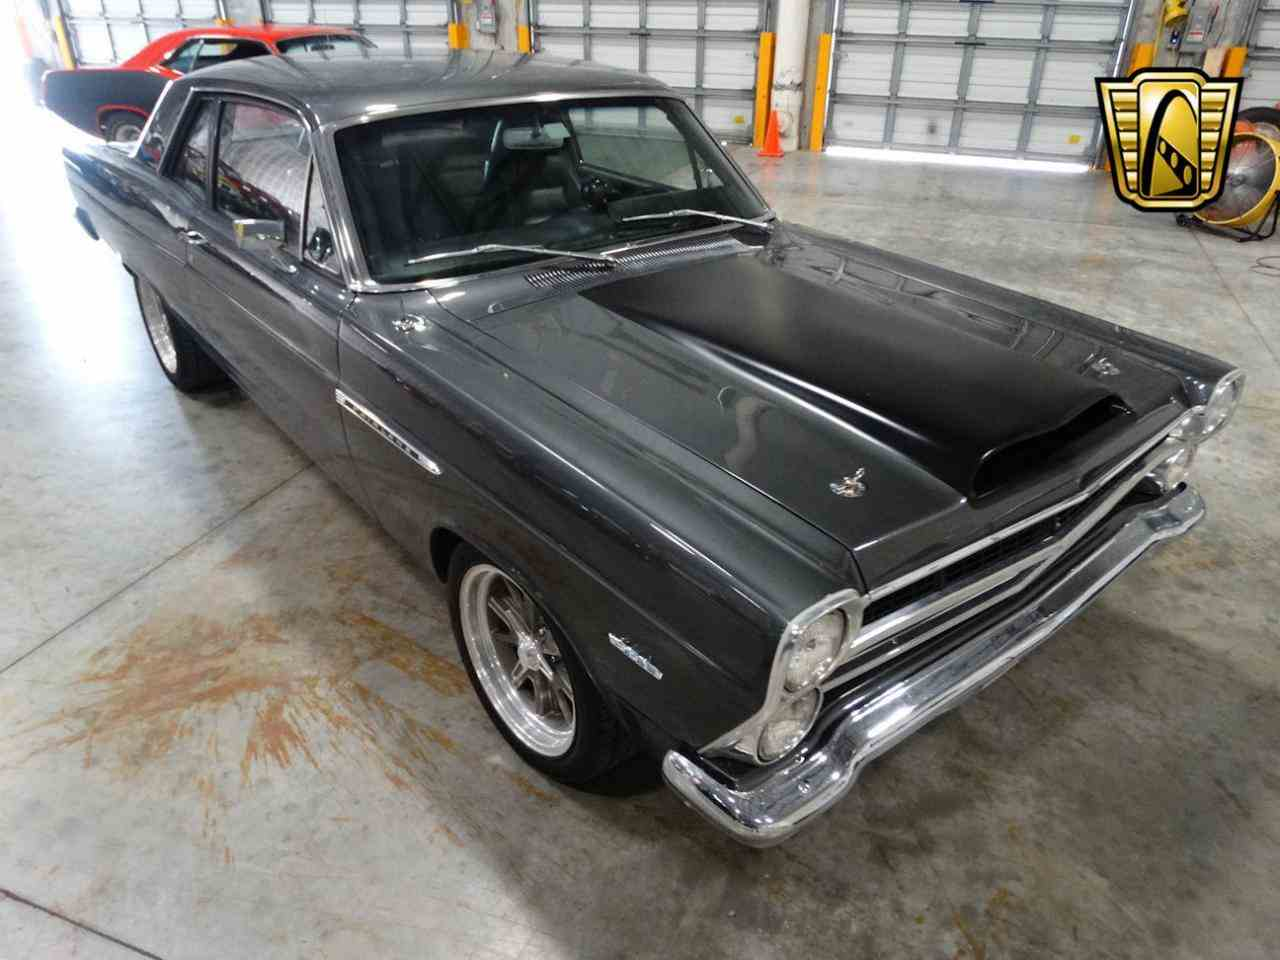 Large Picture of 1967 Ford Fairlane located in Florida - $27,995.00 Offered by Gateway Classic Cars - Fort Lauderdale - L7H3